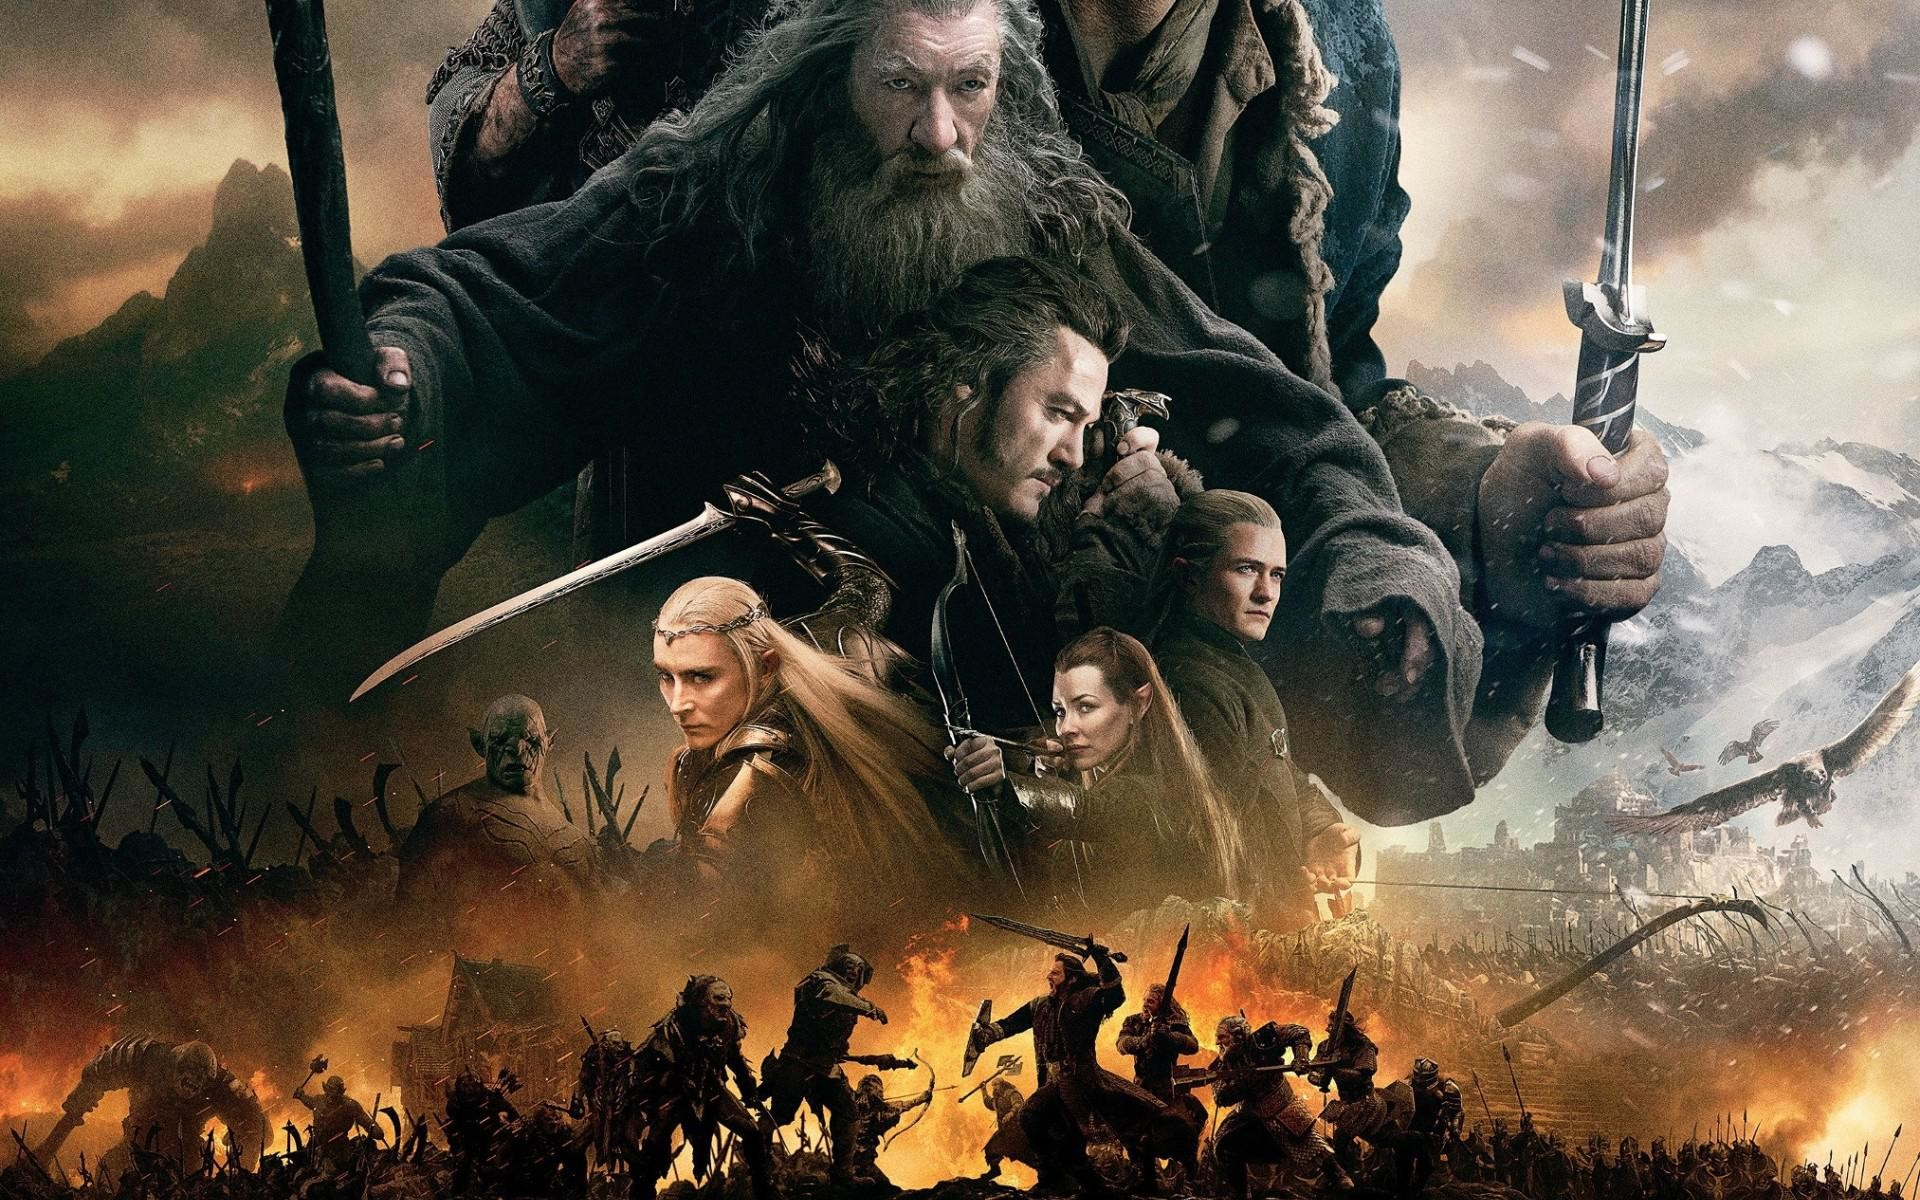 1920x1200 The Hobbit: The Battle of the Five Armies Wallpaper HD 6 - 1920 X 1200